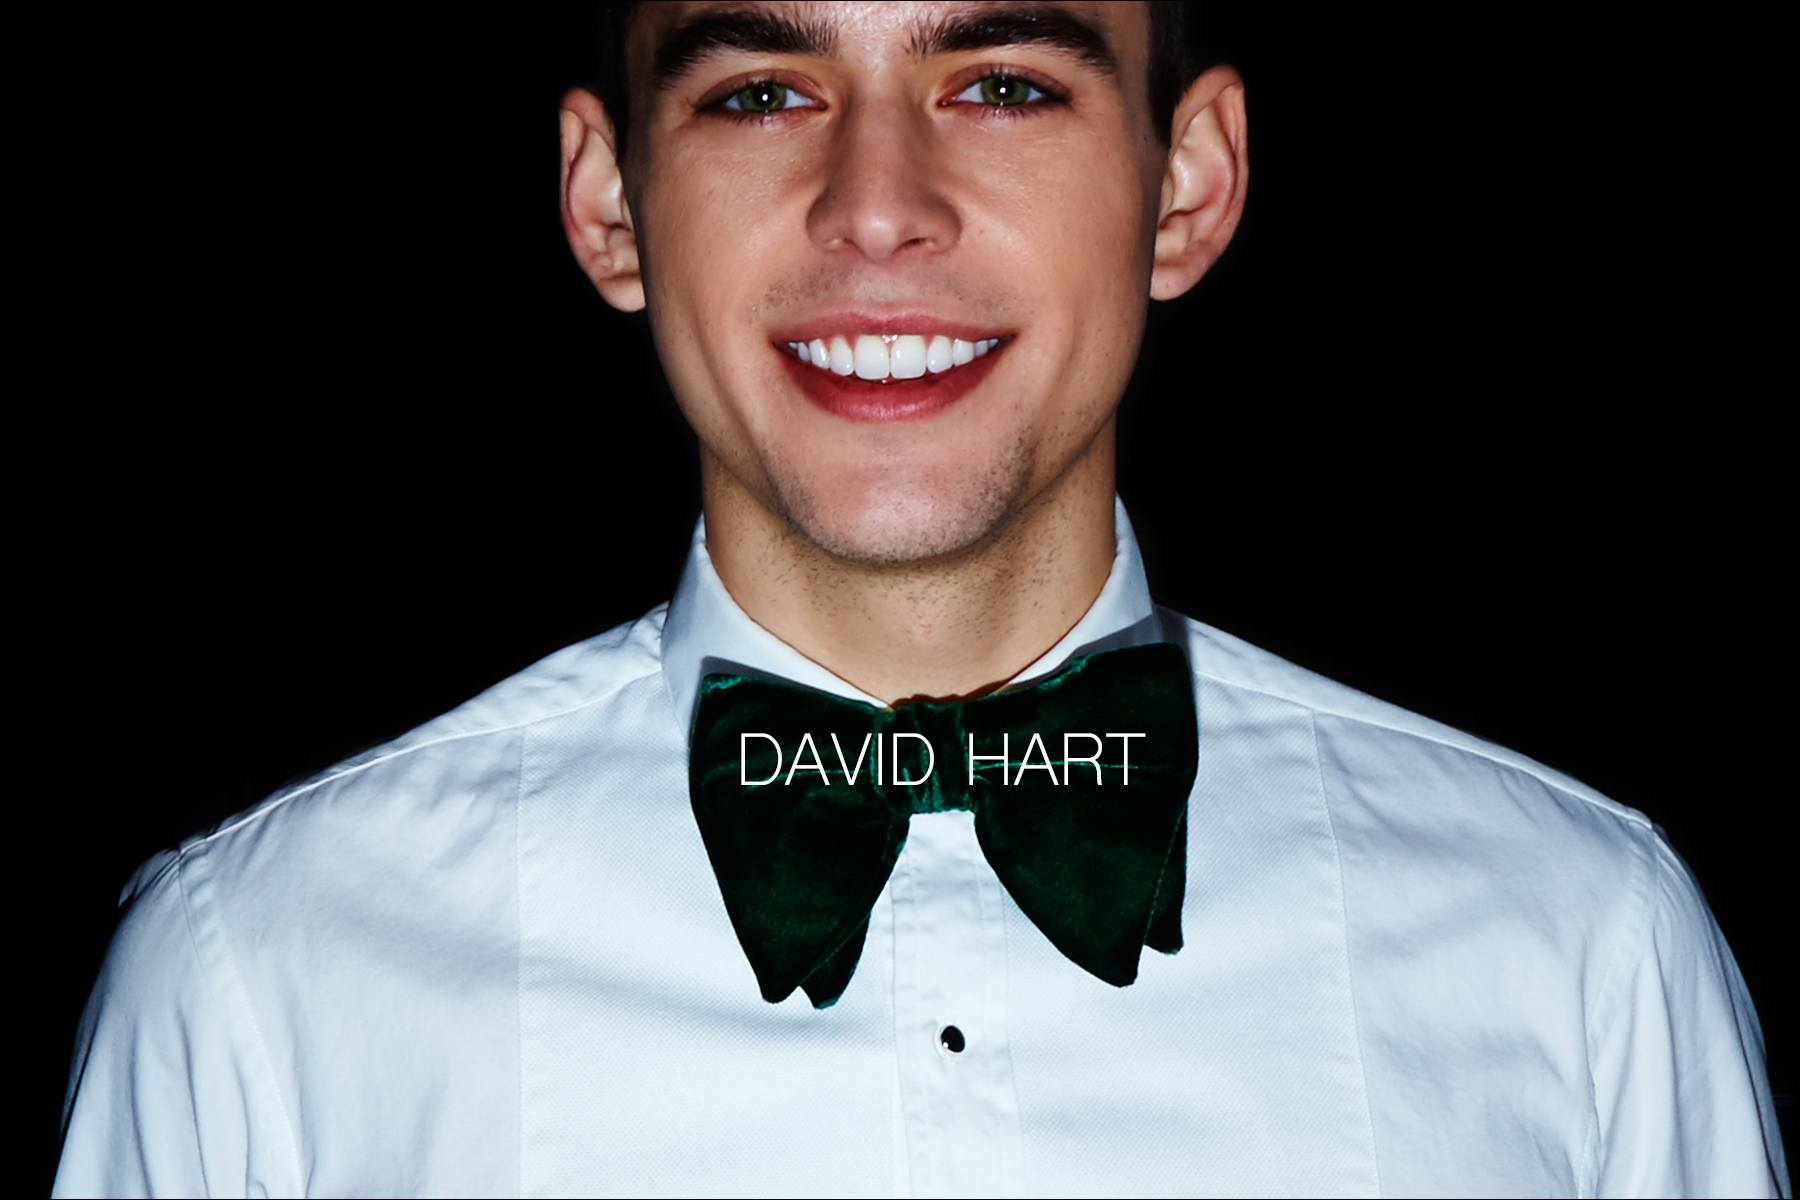 A smiling male model snapped backstage wearing a David Hart bowtie and tuxedo shirt for Fall/Winter 2017. Photography by Alexander Thompson for Ponyboy magazine.